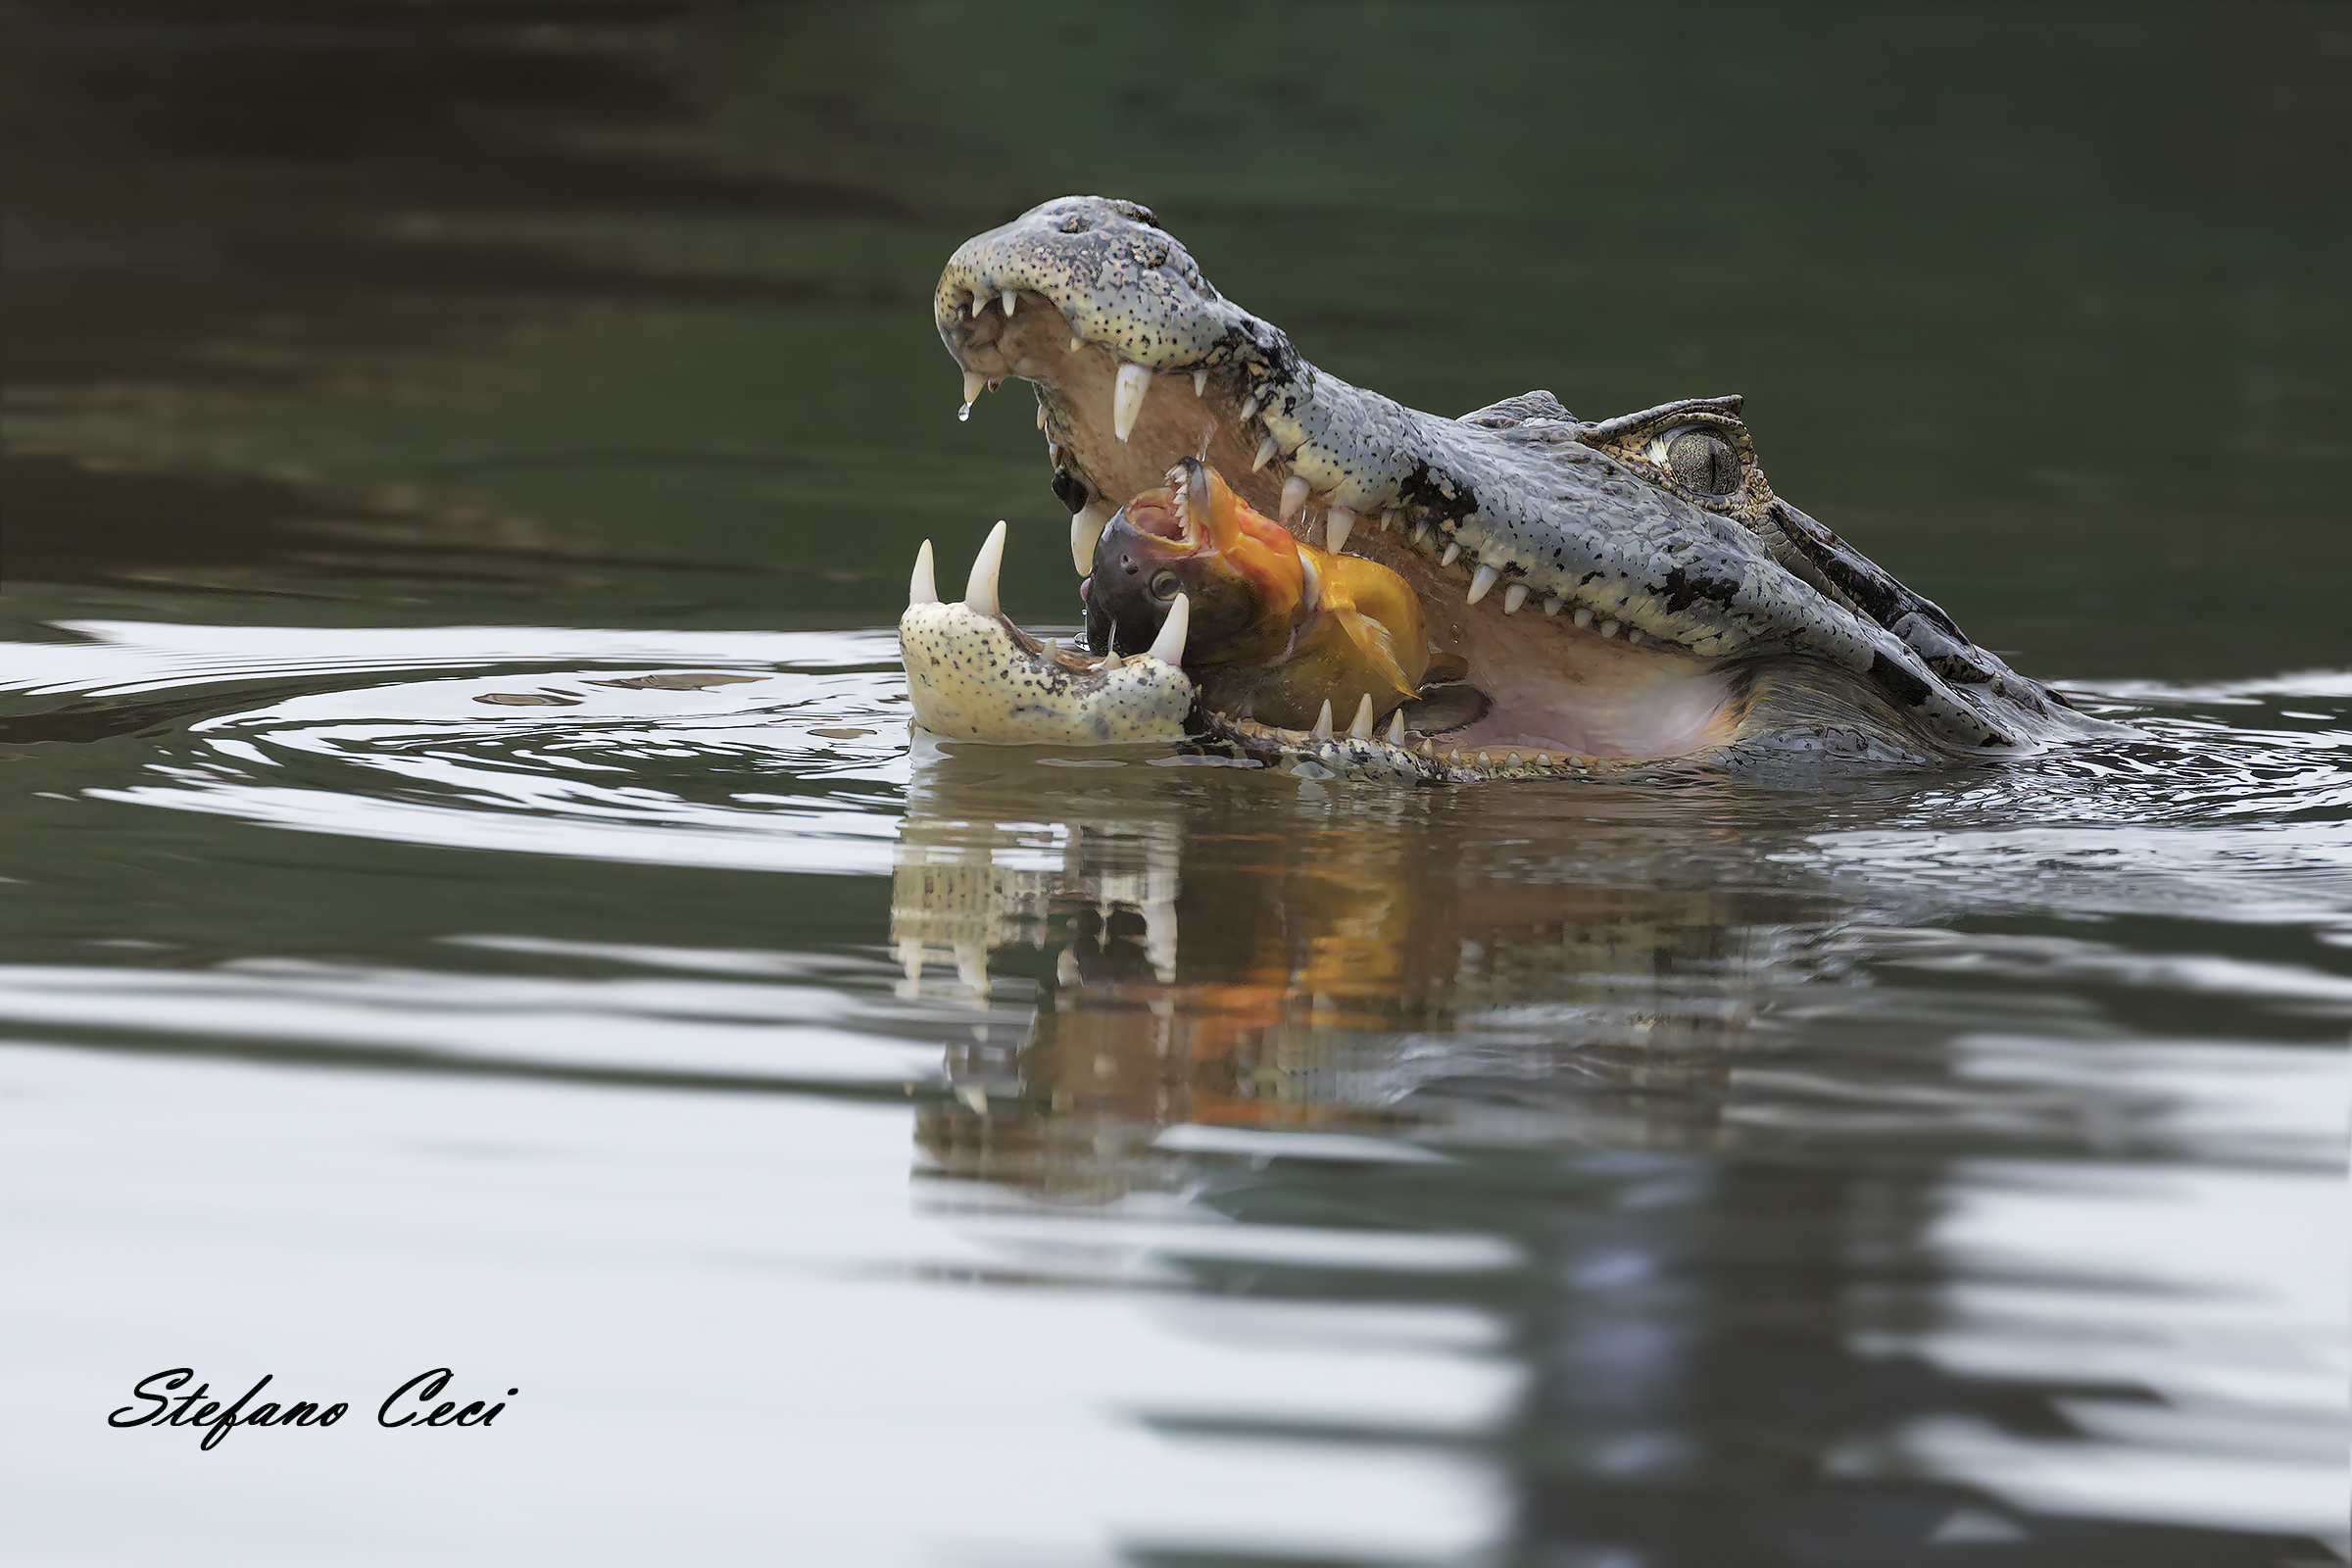 The caiman and the Pirana...